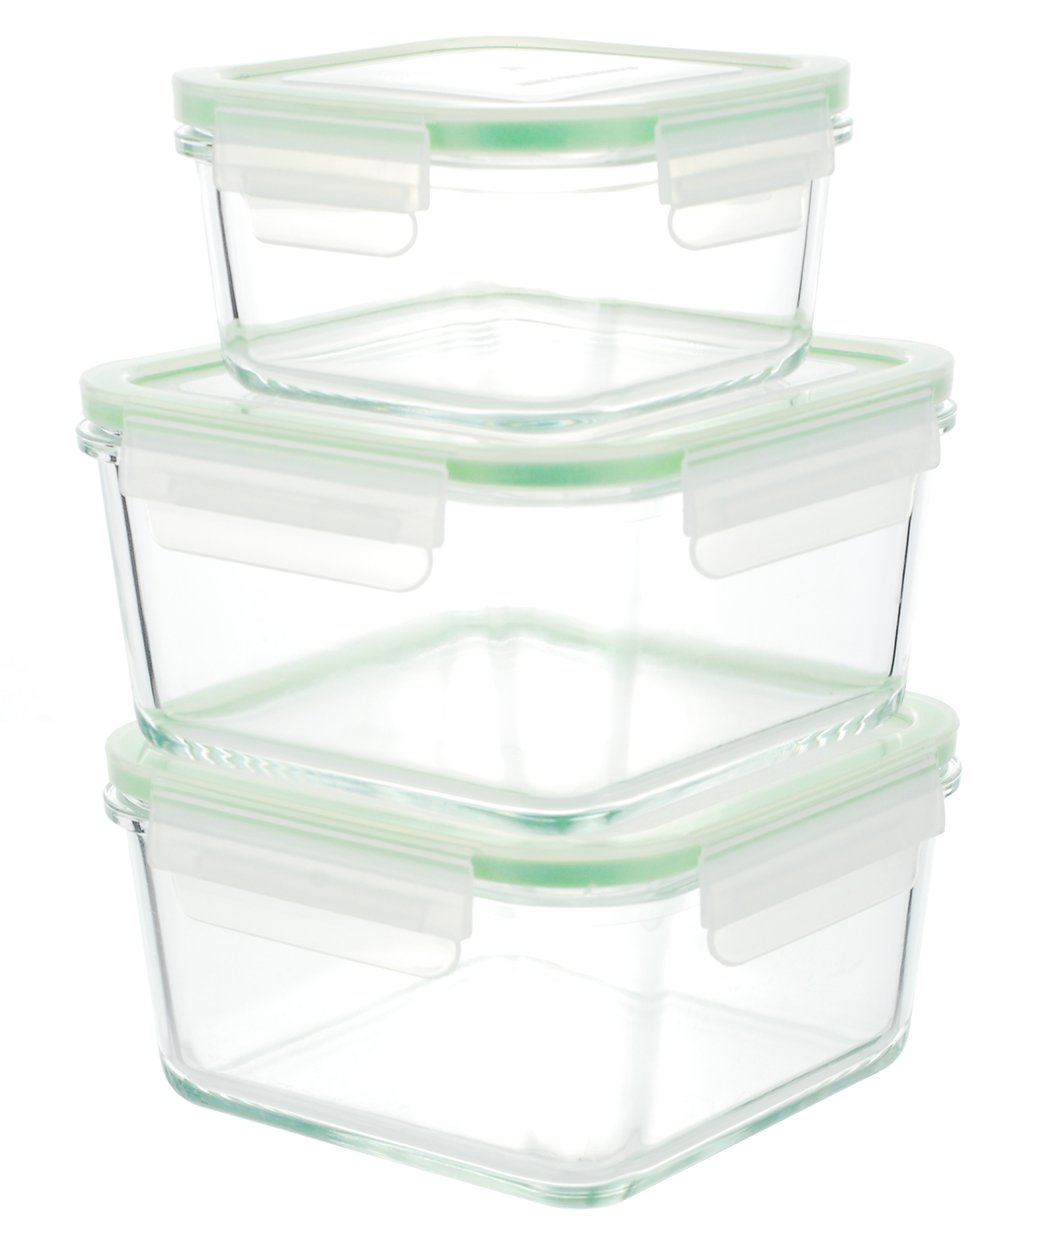 Superior Amazon.com: Kinetic 6 Piece (35oz, 15oz) Square GoGreen Glassworks Oven  Safe Glass Food Storage Container Set With Leak Proof Lids; (3 Containers  And 3 ...